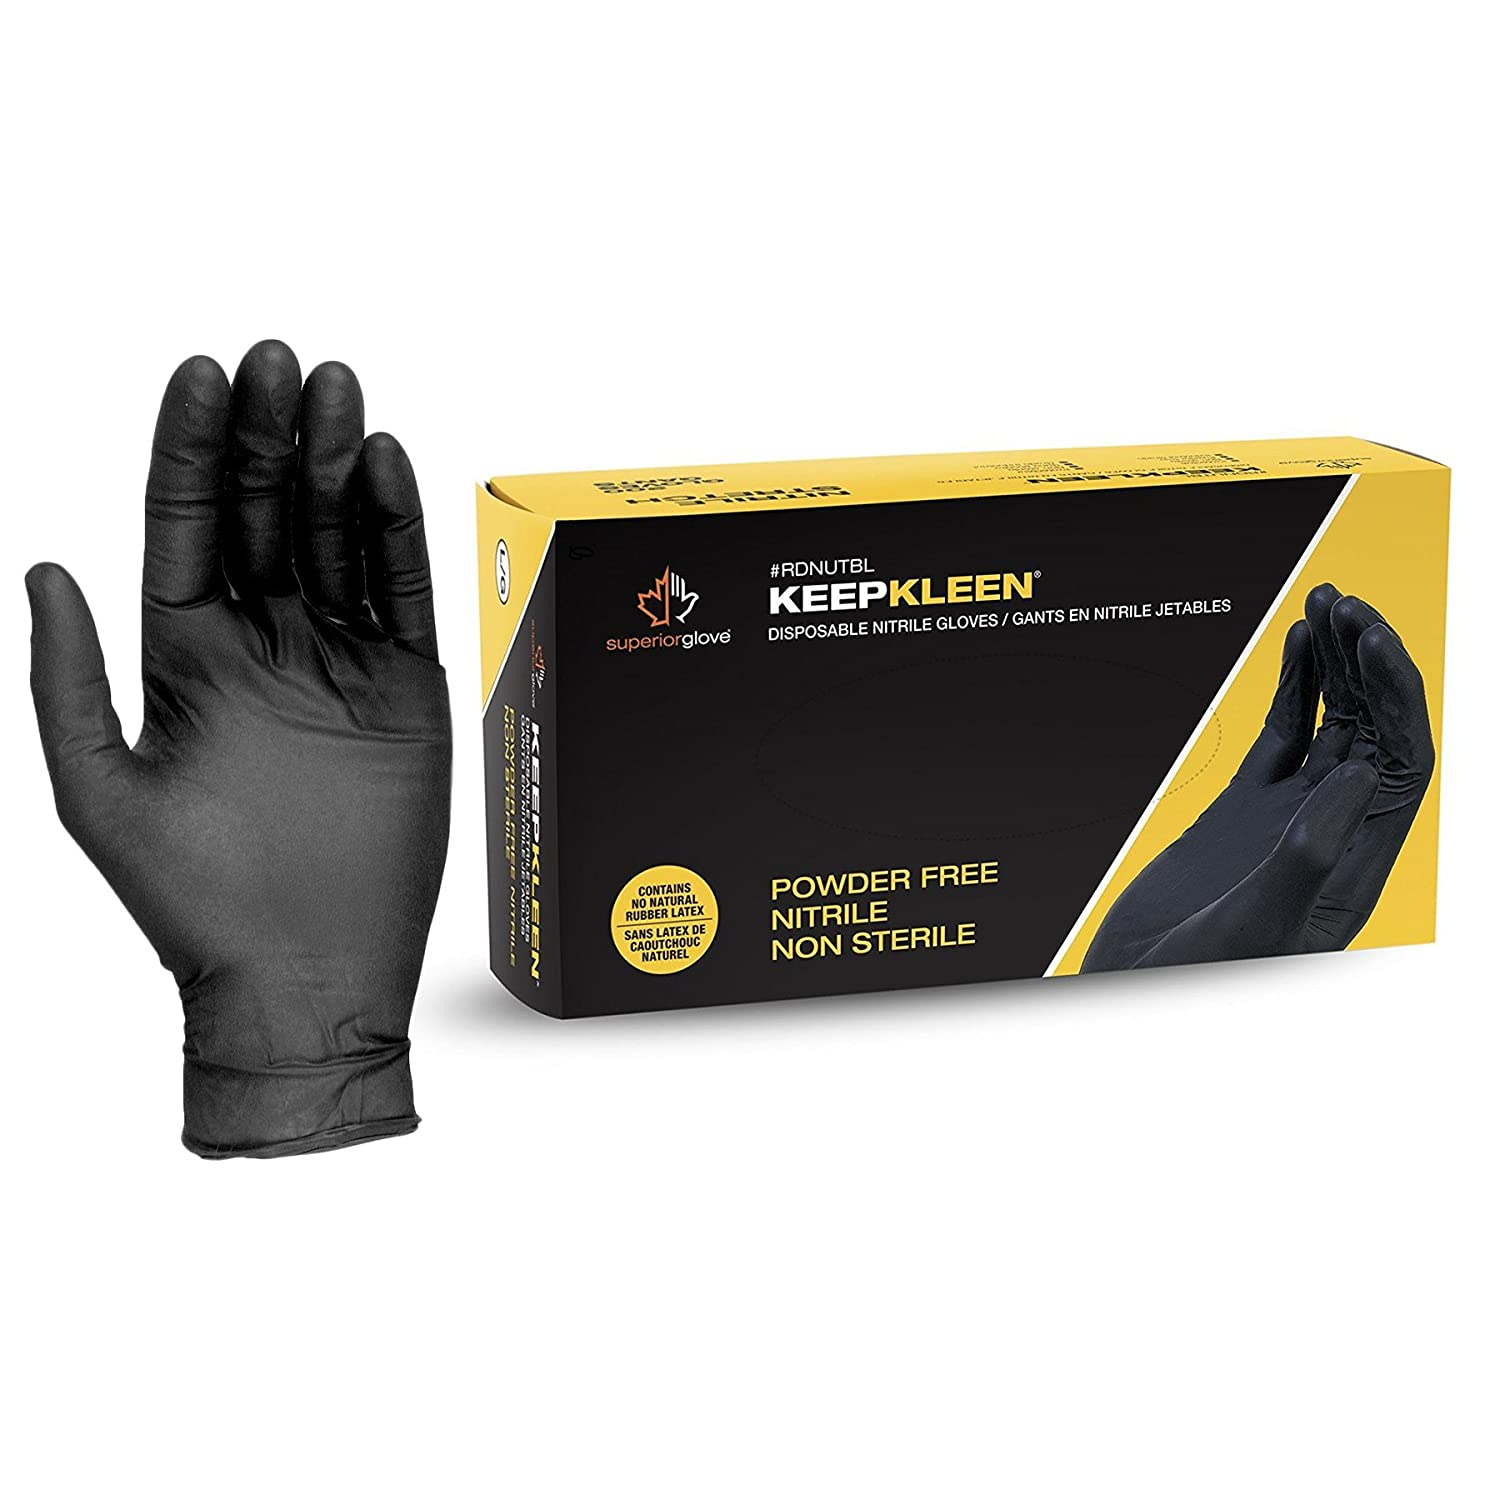 KeepKleen Nitrile Disposable Gloves, Ultra Thin Black, Powder Free, 3.5 mil, 200ct - Size Small Superior Glove Works